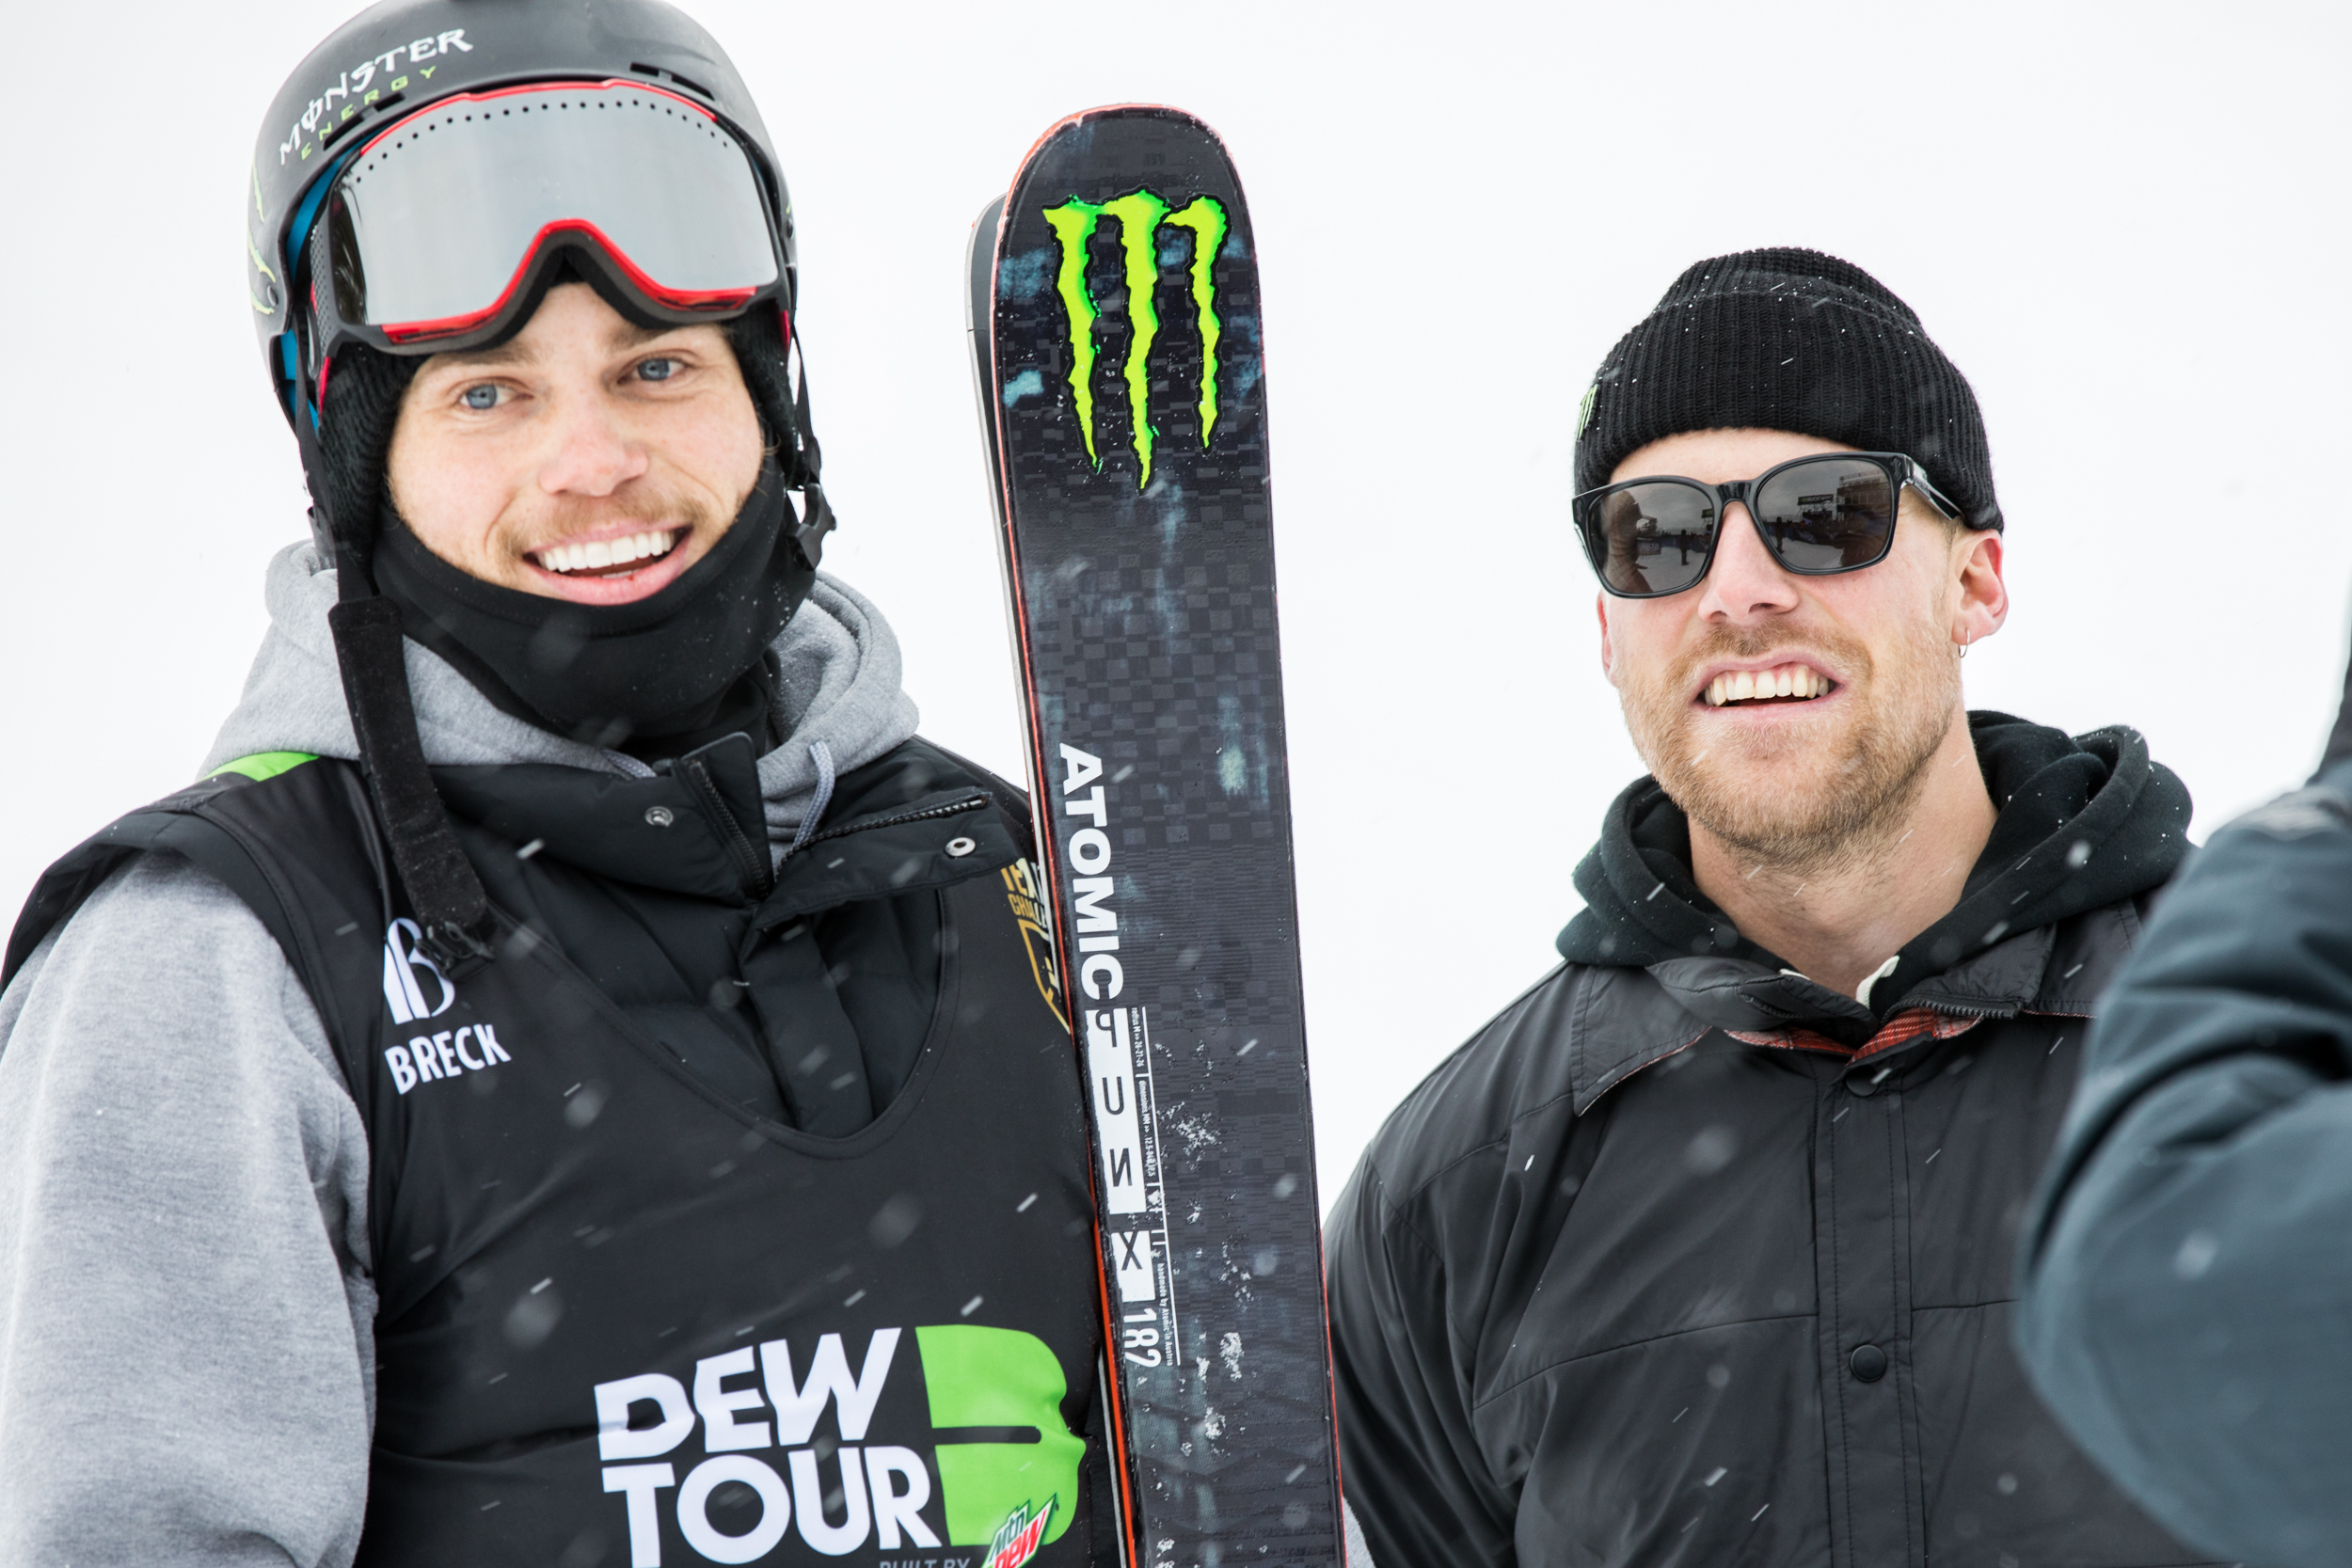 Gus Kenworthy and Jossi Wells were all smiles at the end of the team competition.